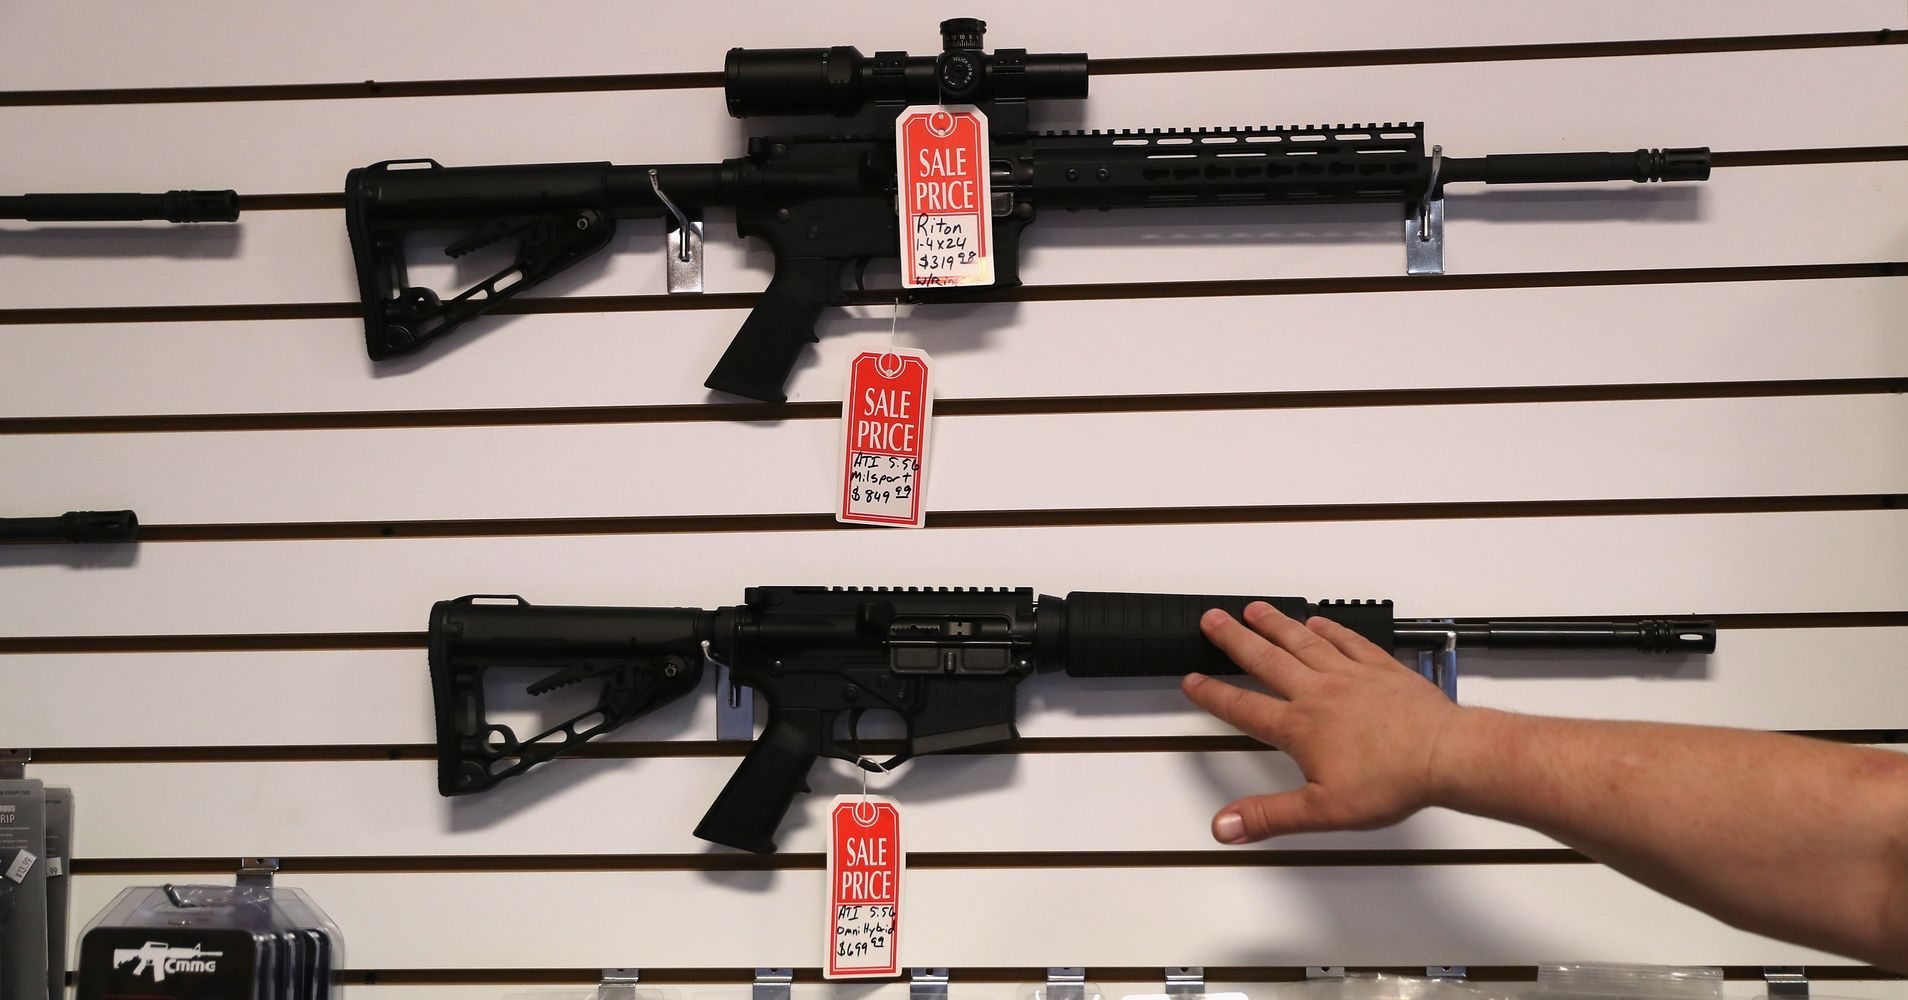 Heres what you need to know about the weapons of war used in mass heres what you need to know about the weapons of war used in mass shootings huffpost thecheapjerseys Choice Image